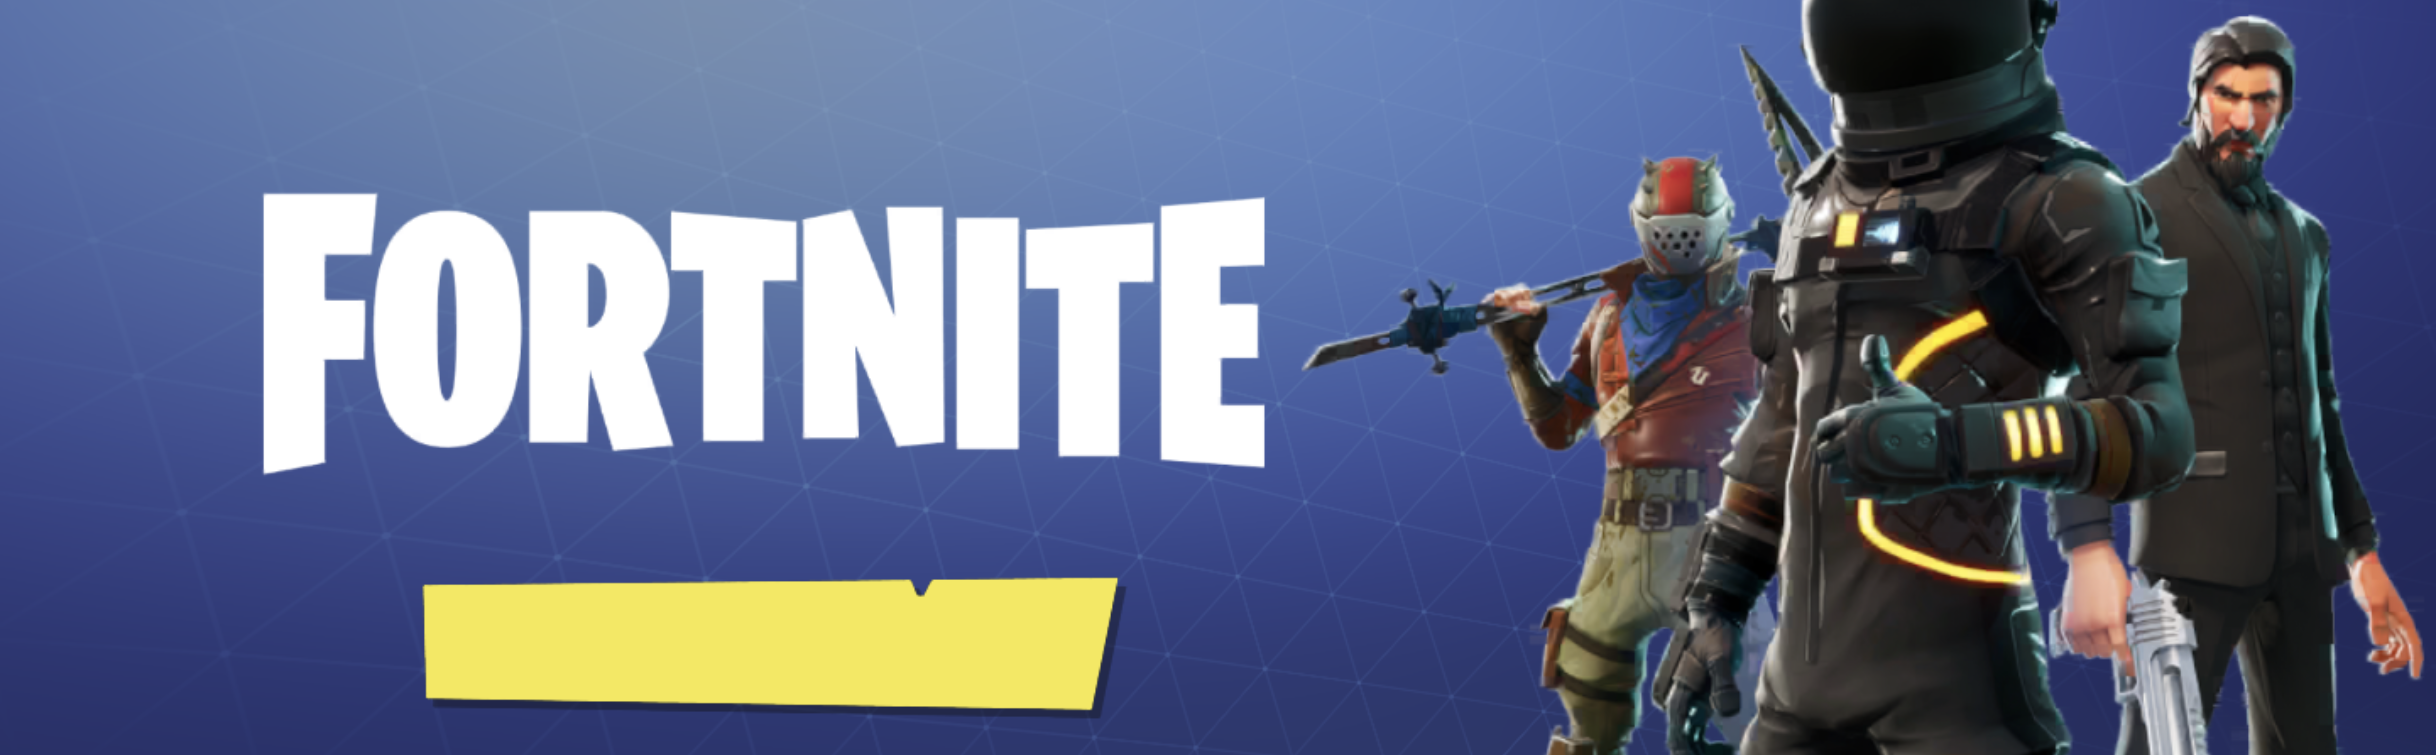 fortnite ios Launch画面